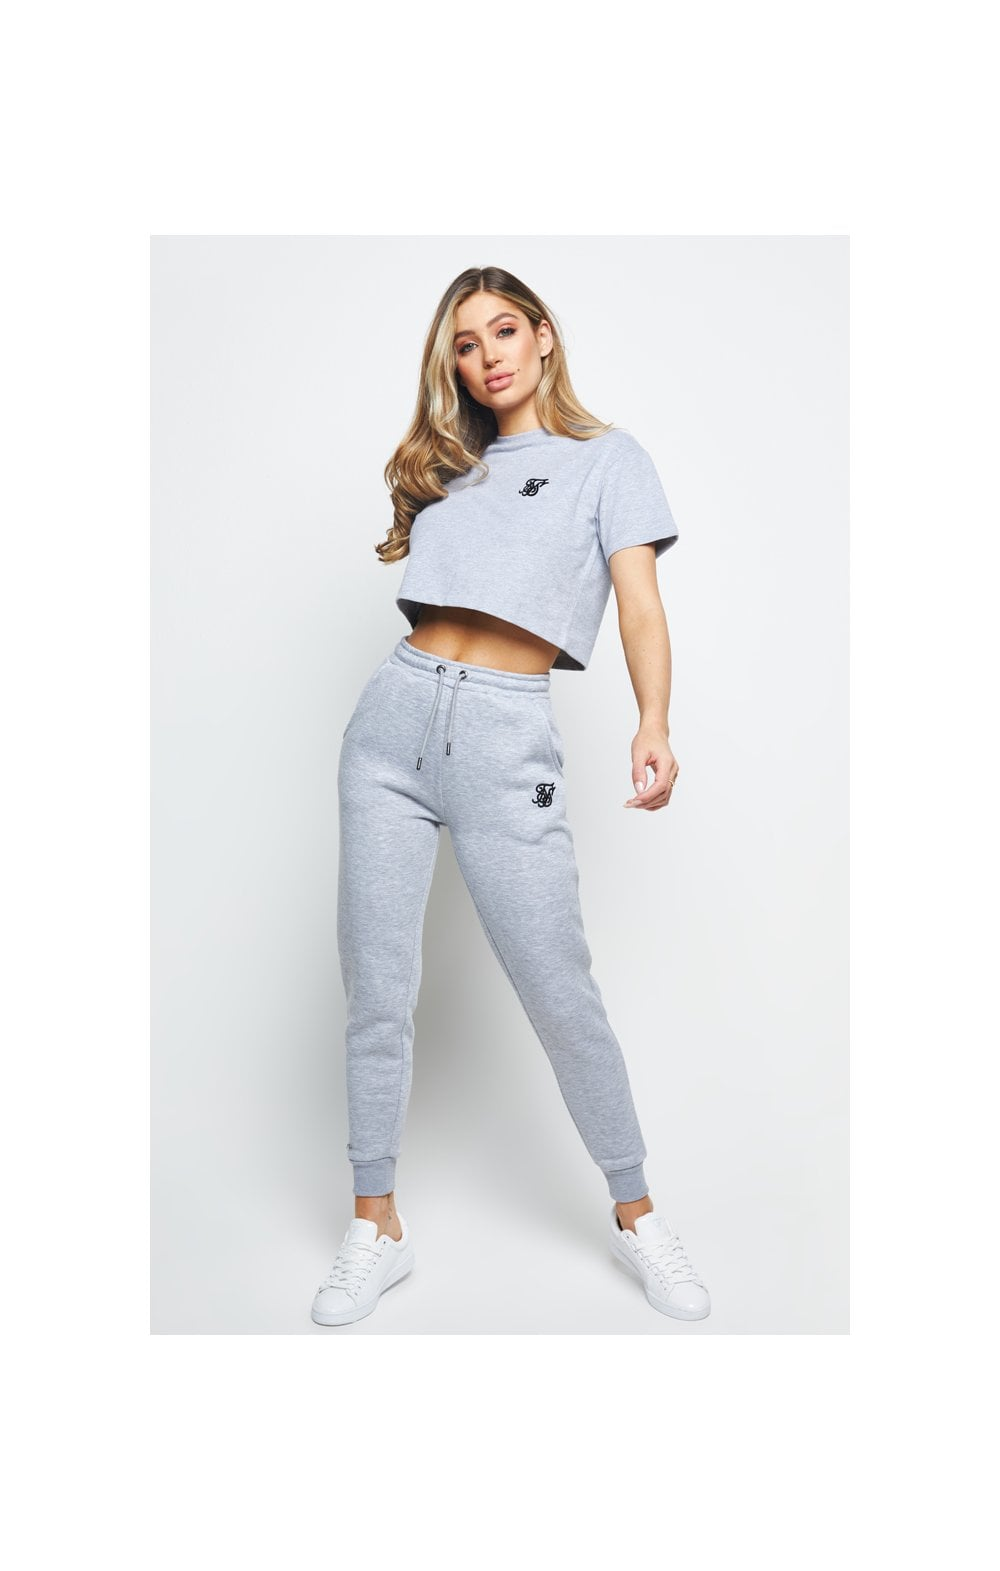 SikSilk Retro Box Fit Crop Tee – Grey Marl (5)